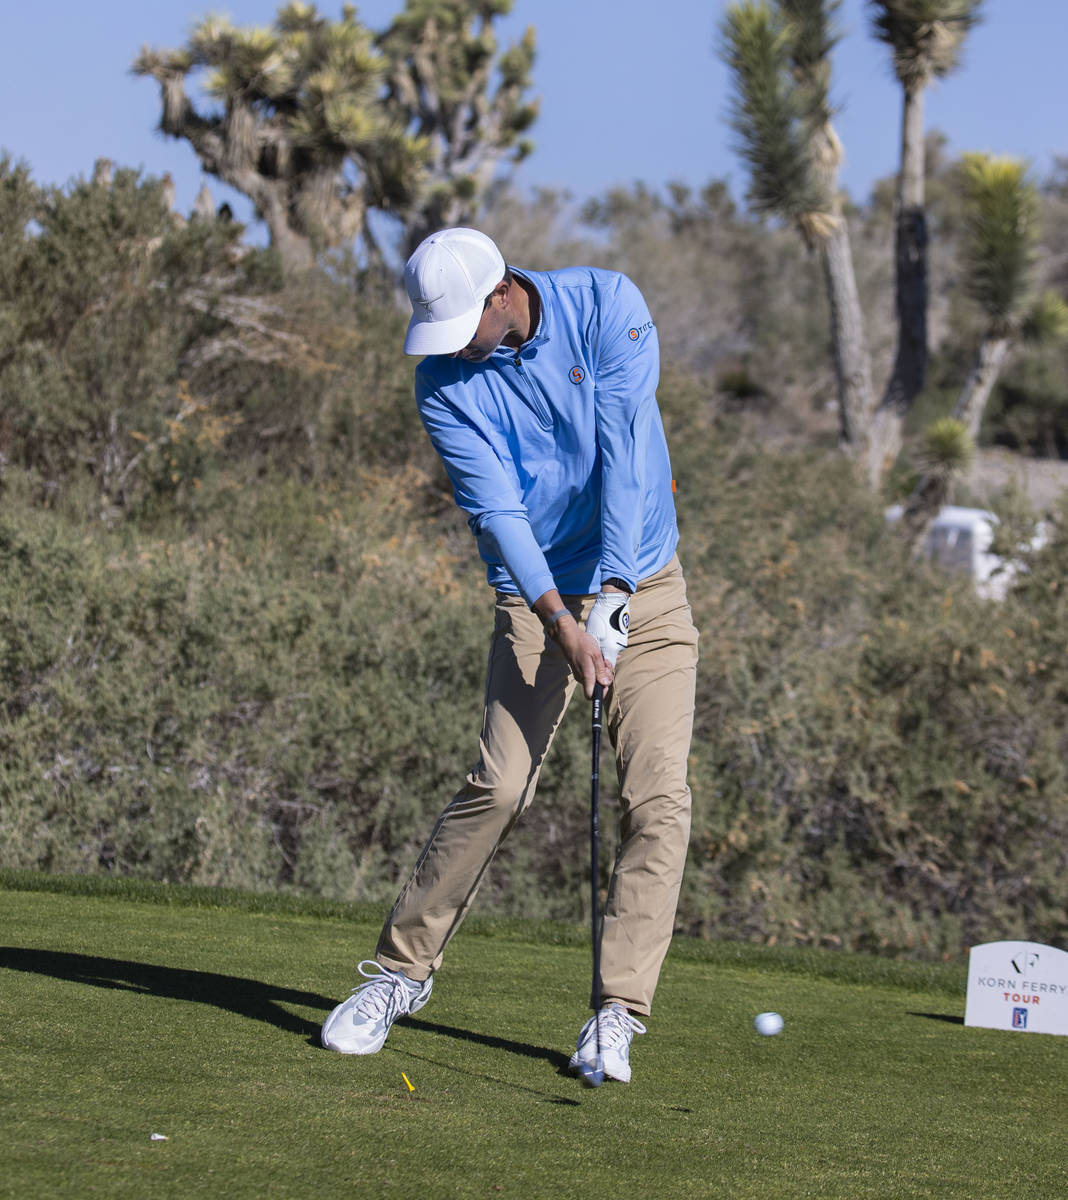 Jay McLuen of Forsyth, Ga., hits his drive during the first round of the MGM Championships at P ...